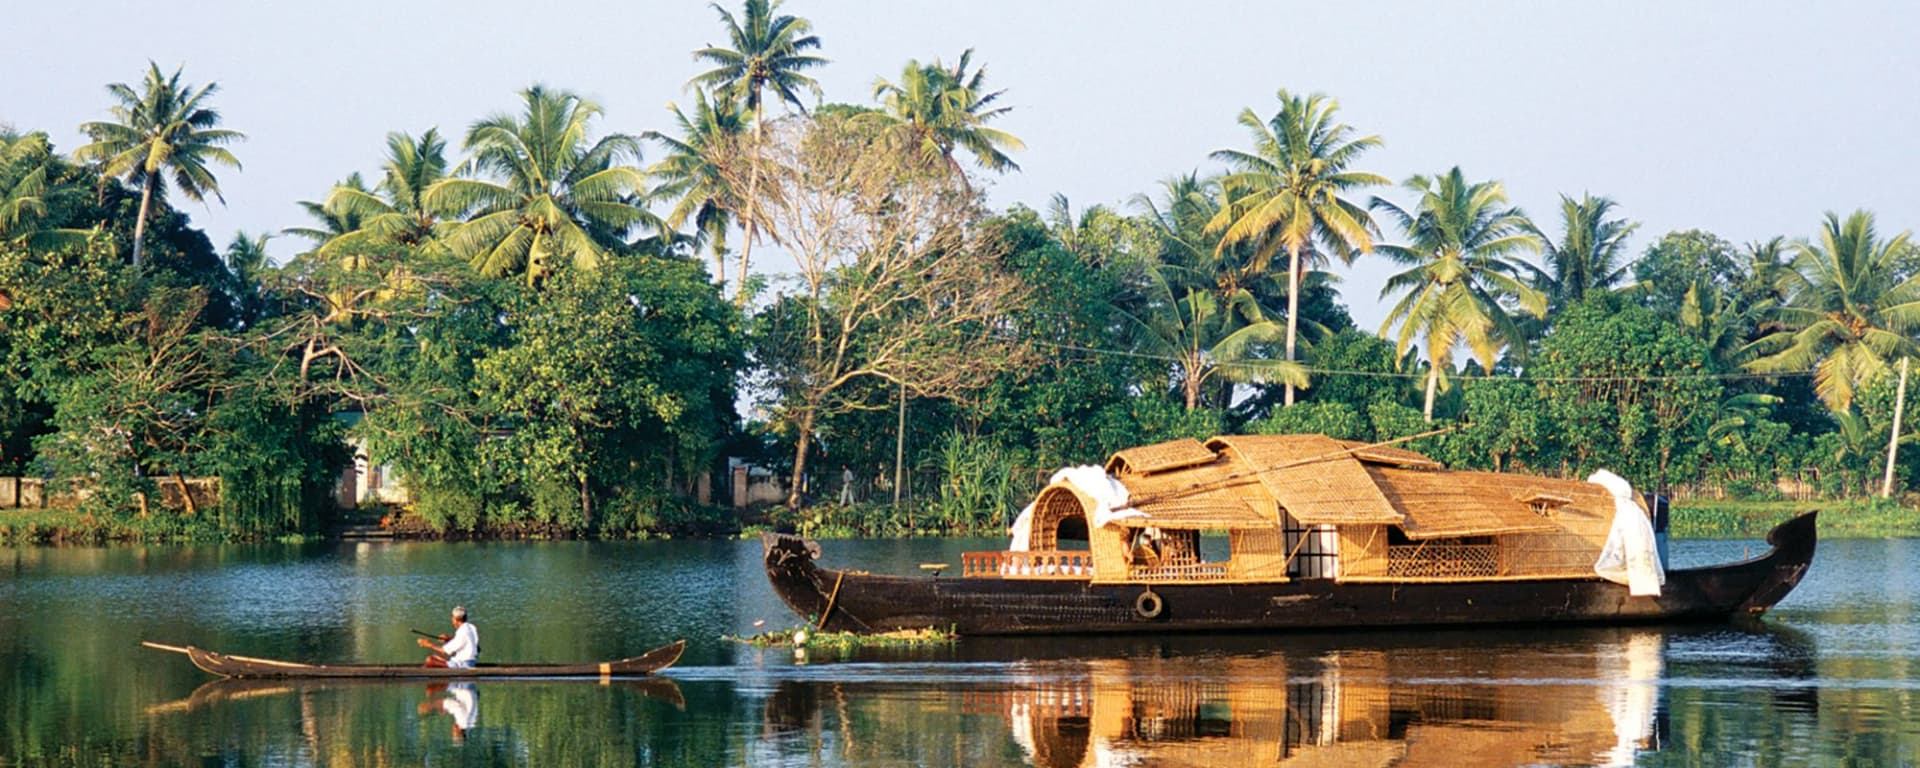 Les beautés naturelles du Kerala de Kochi: Backwaters: house boat